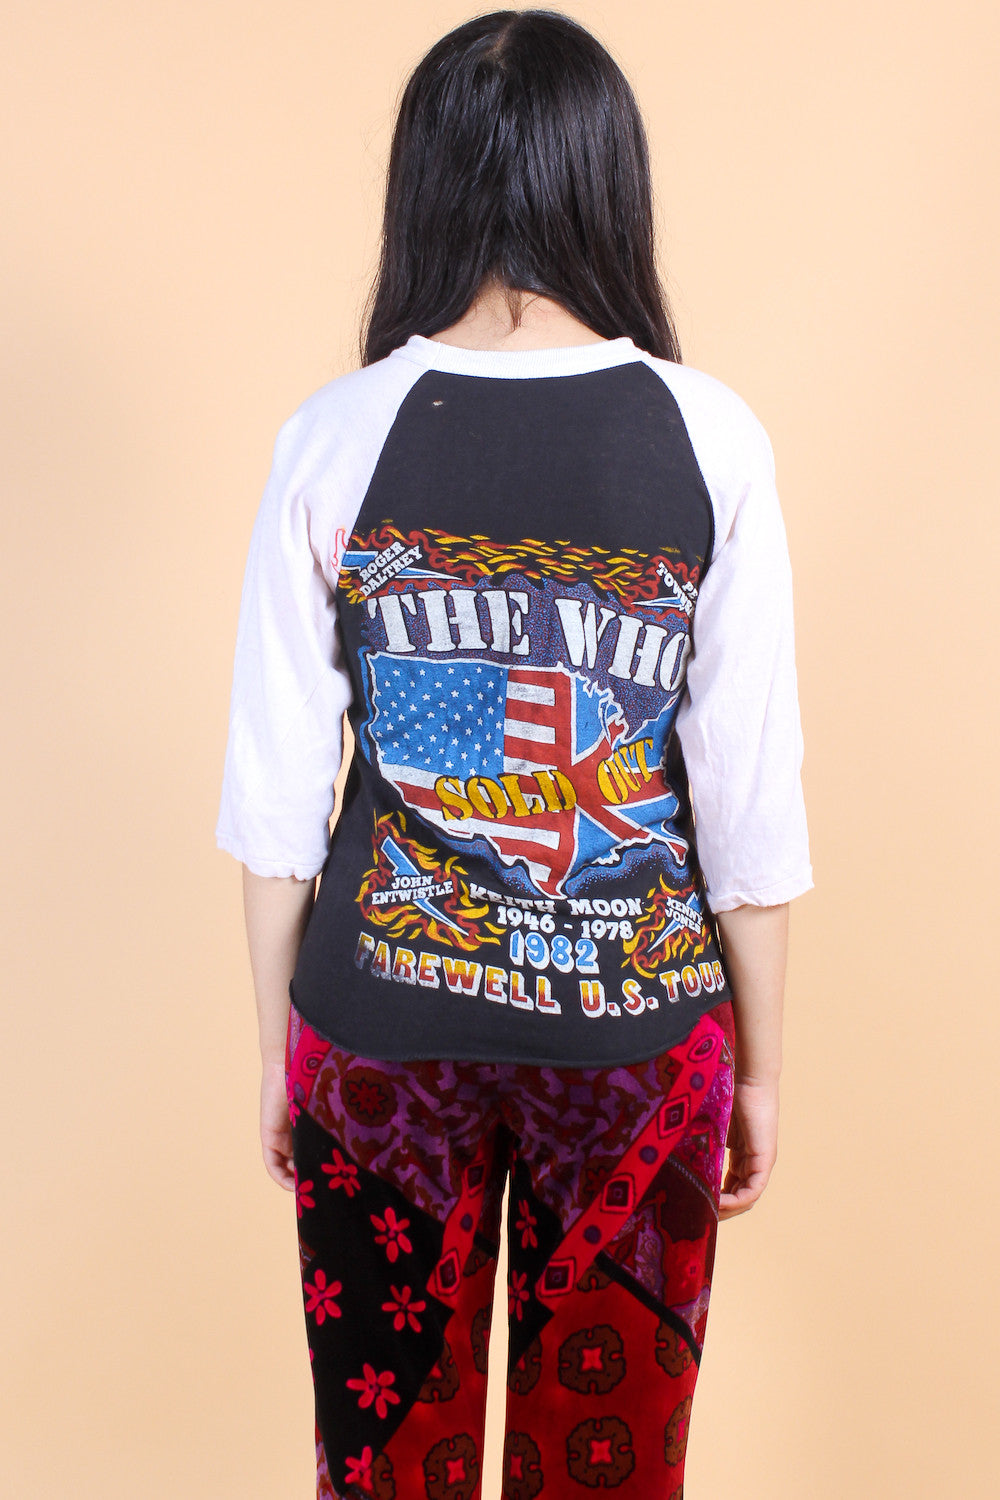 Vintage 1982 The Who Tour Tee